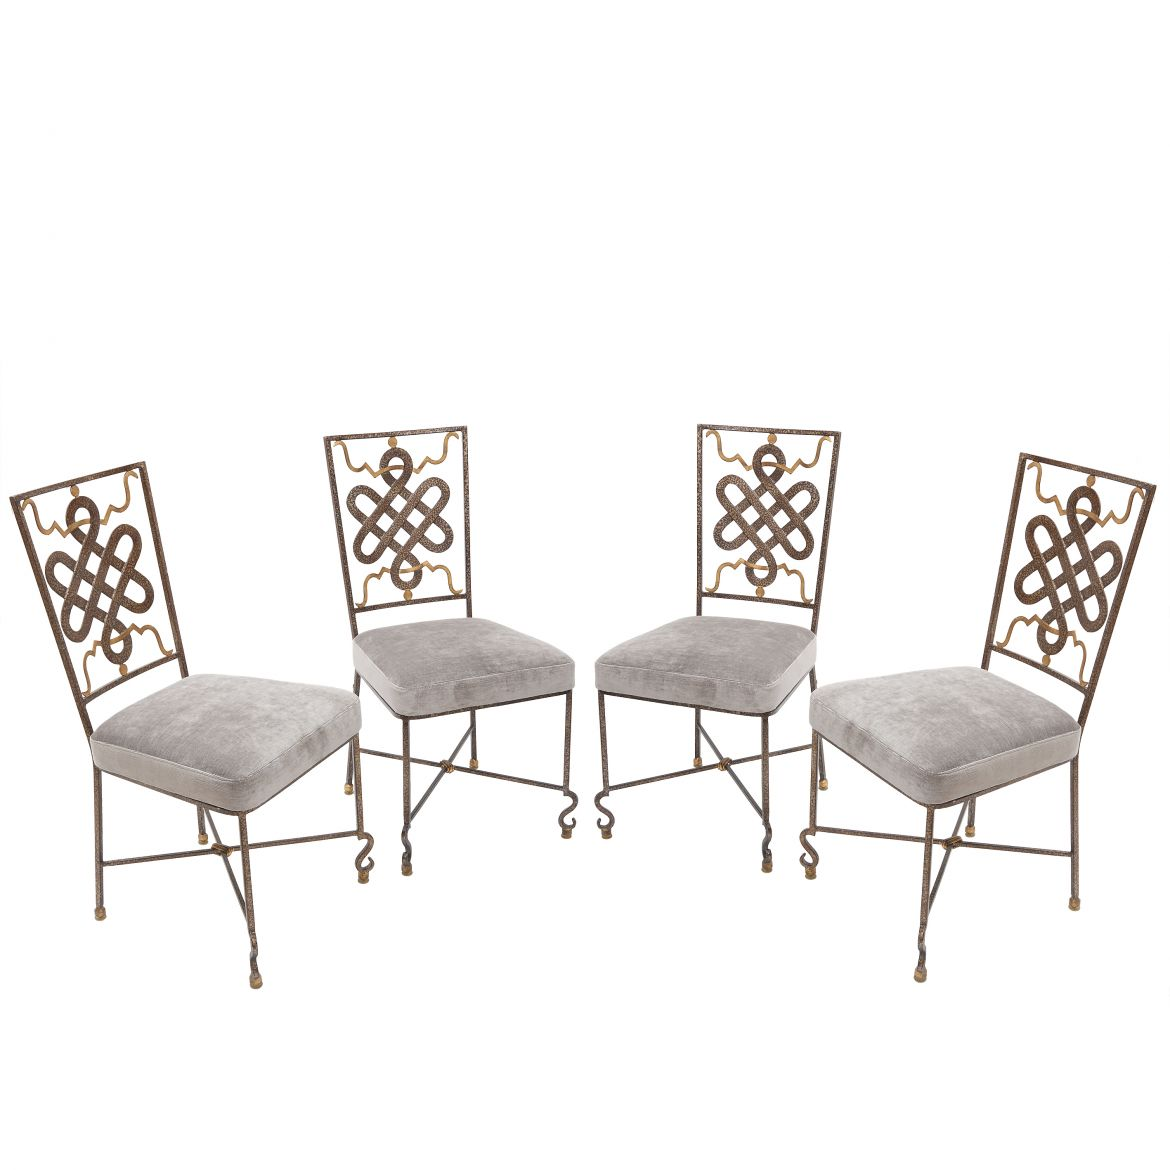 Set 4 Lacquered Iron Chairs